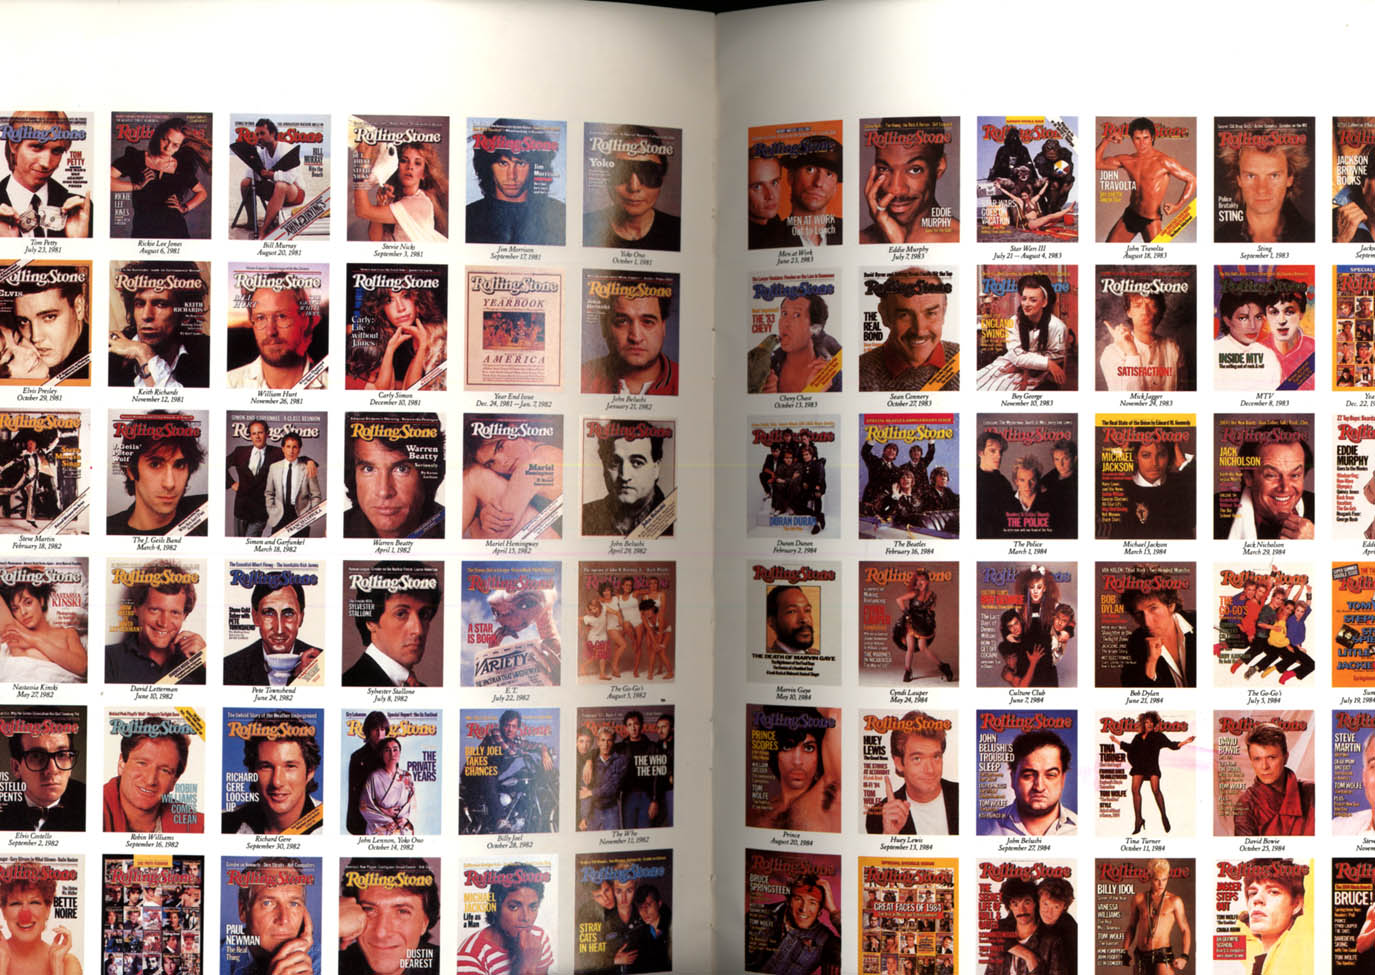 Image for Rolling Stone pictorial It's been twenty years 1987 showing all covers